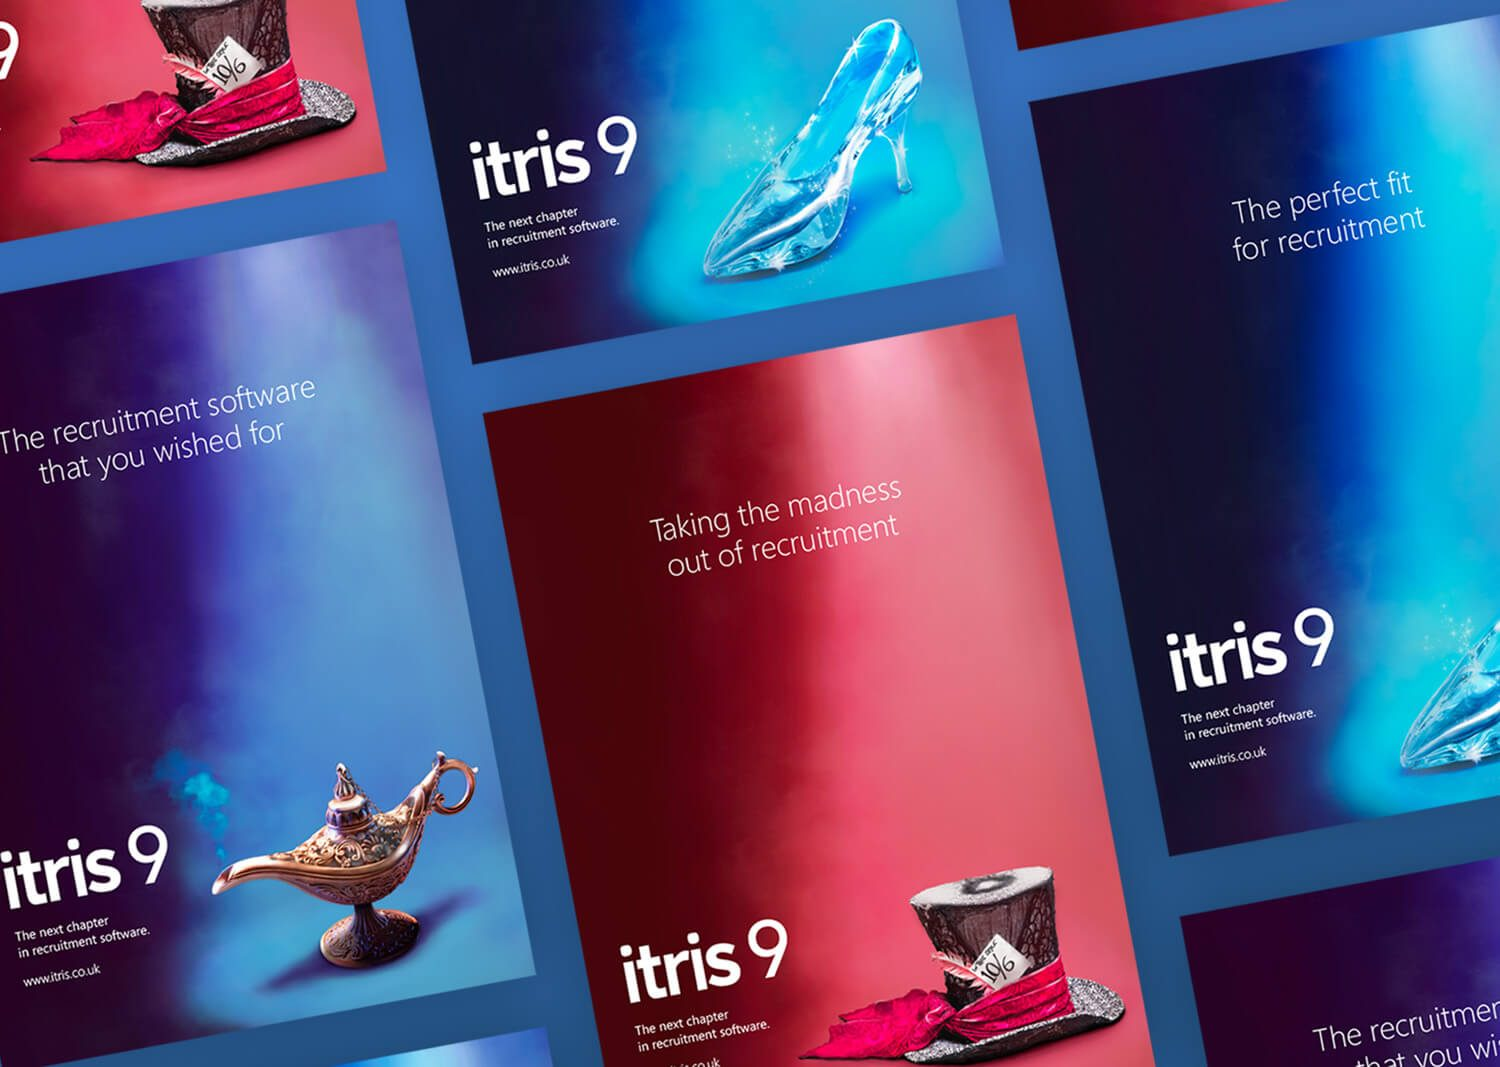 Set of campaign posters for Itris 9